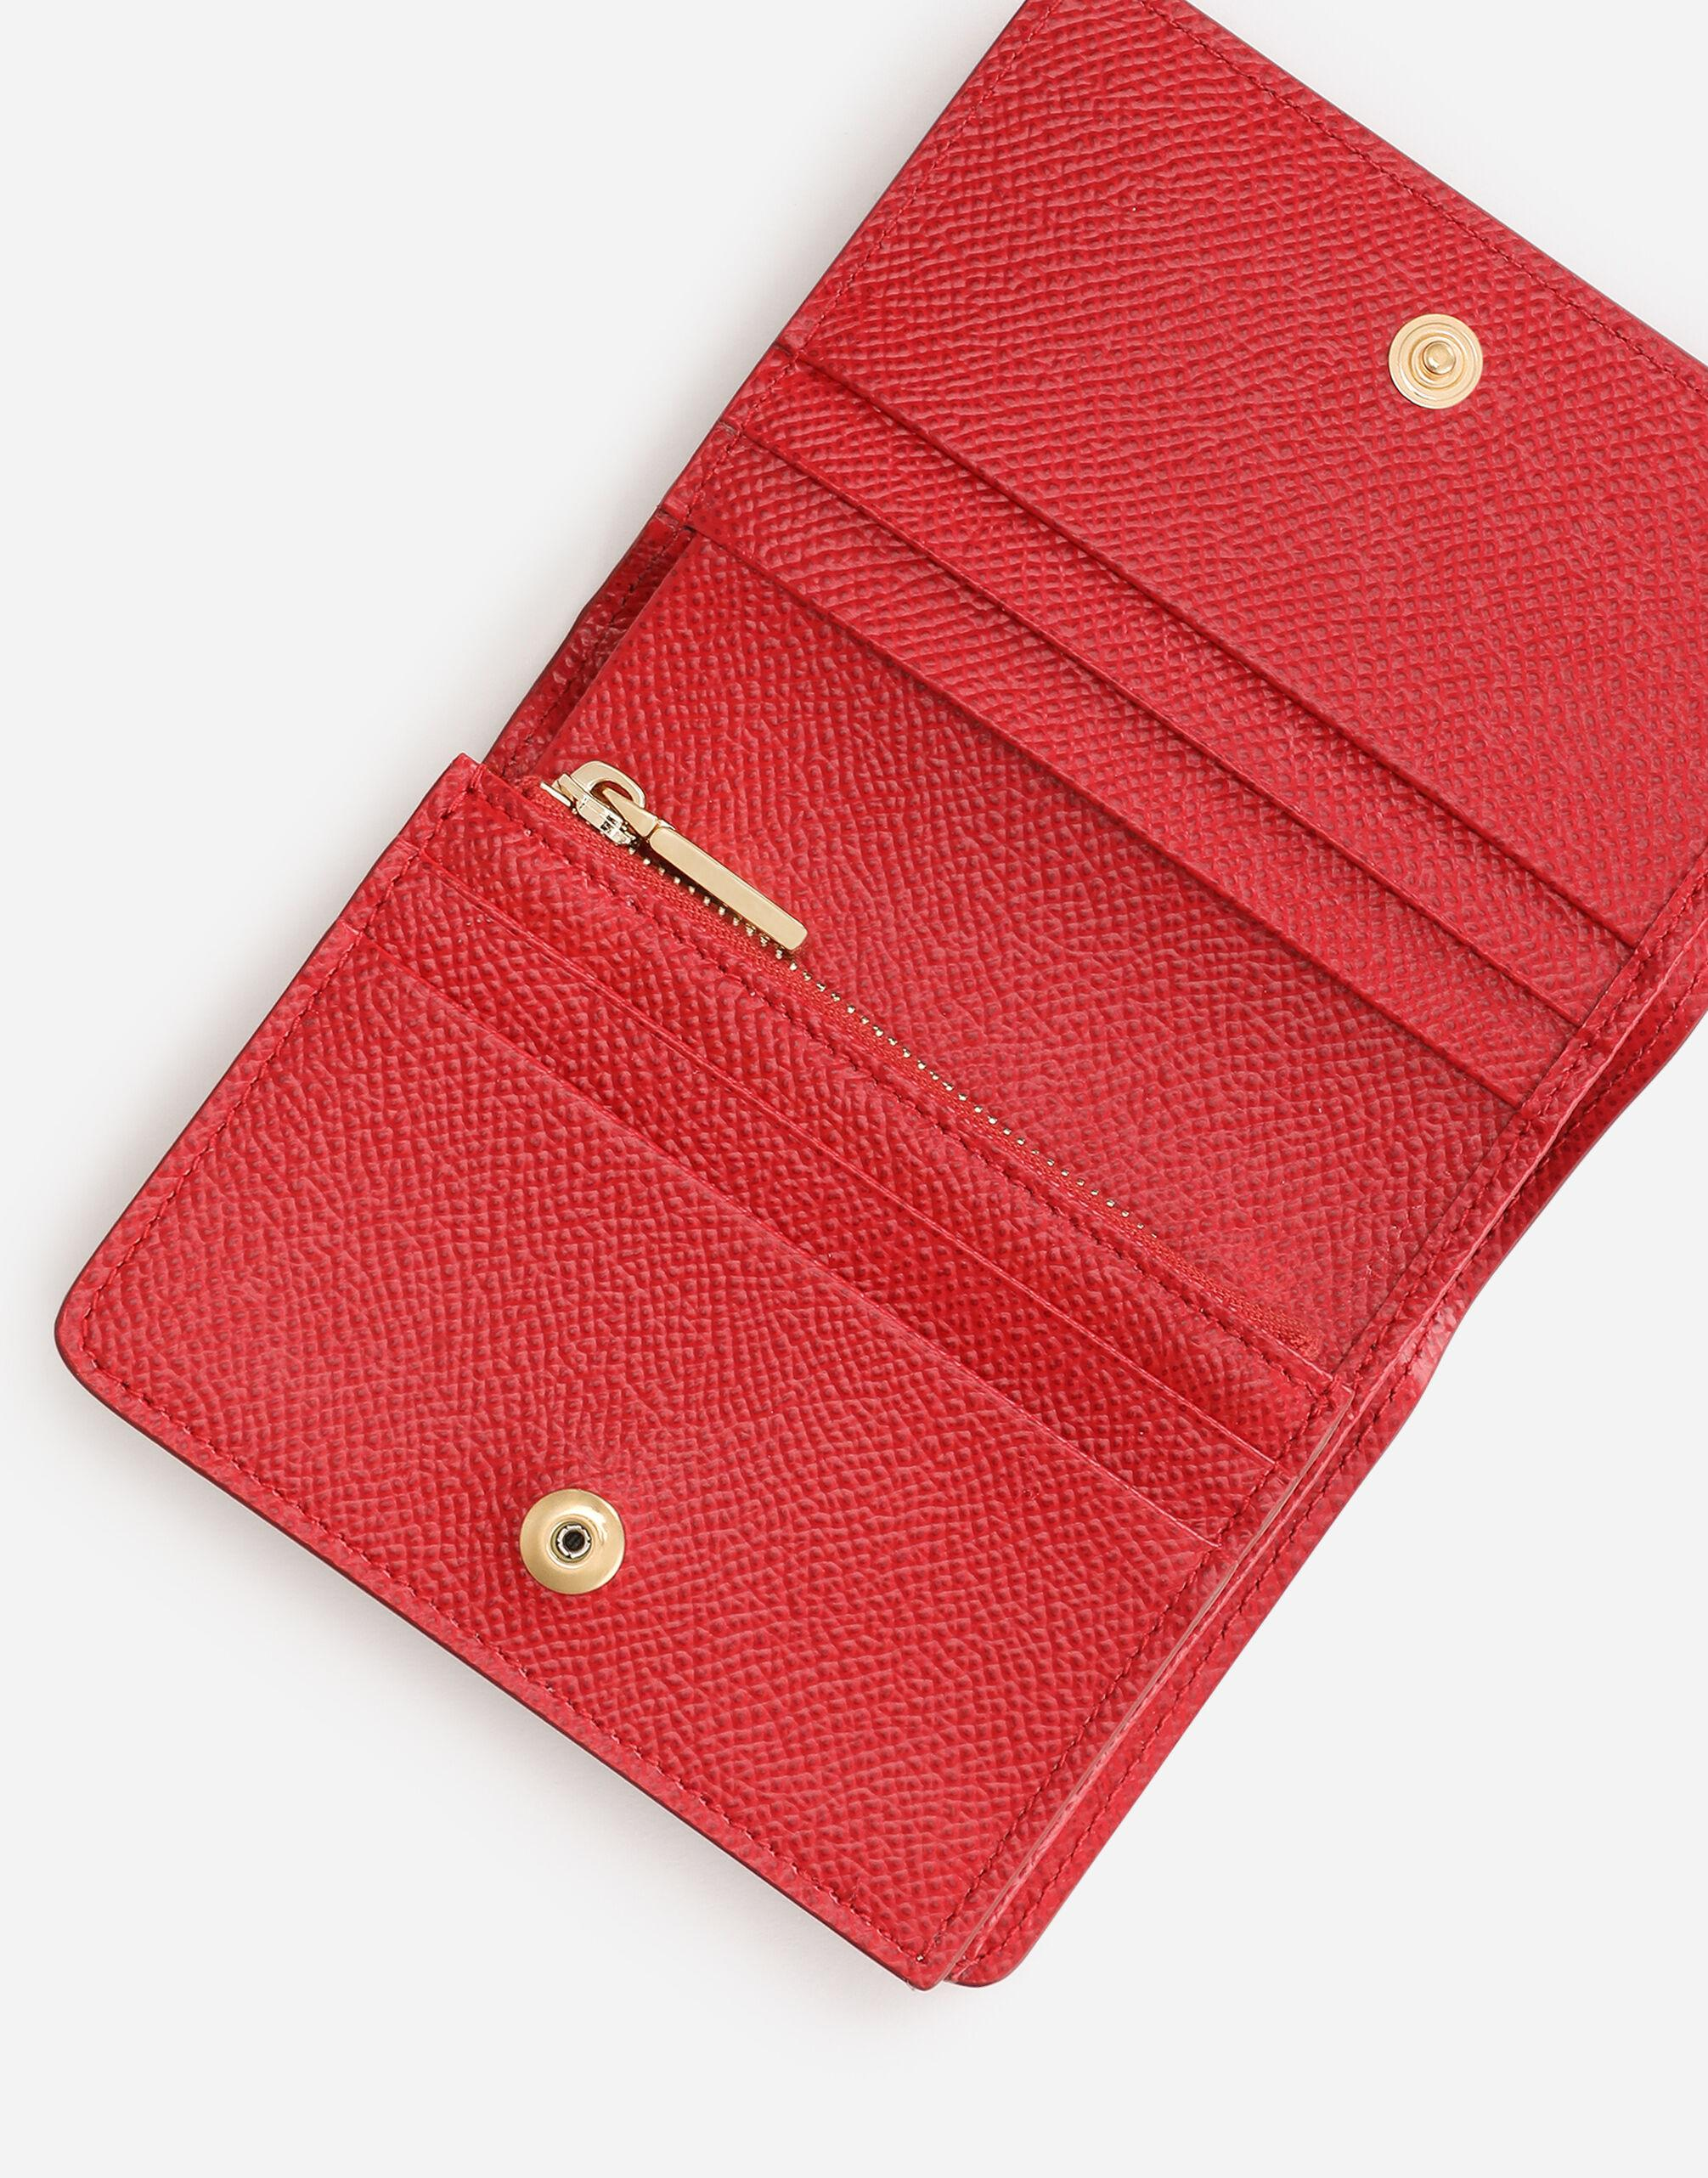 Small continental wallet in Dauphine calfskin with rhinestone DG detail 3